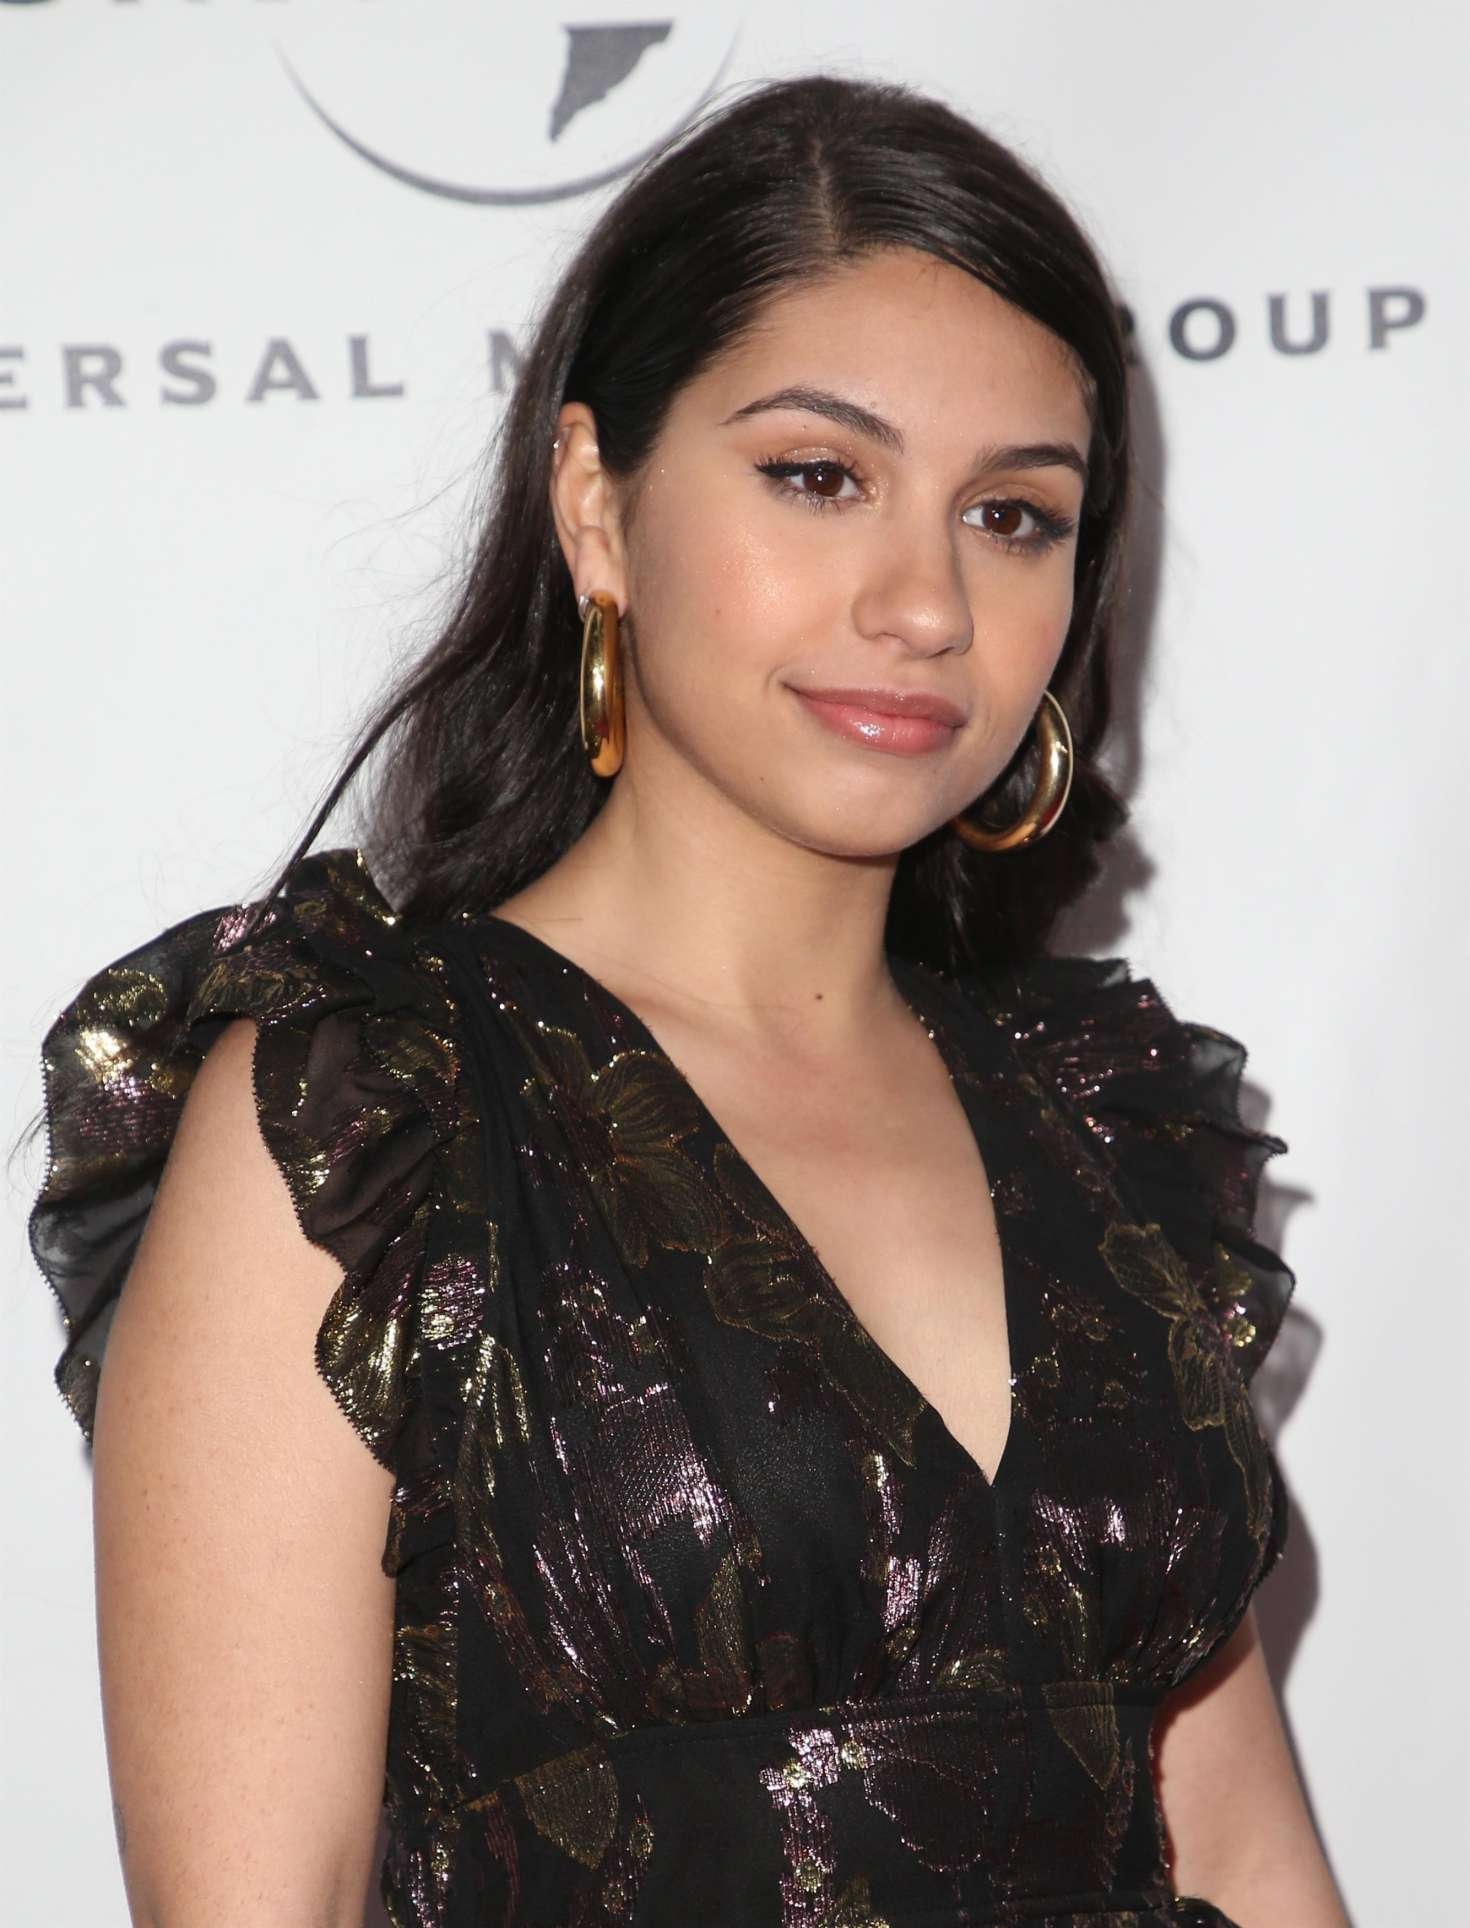 Alessia Cara 2019 : Alessia Cara: 2019 Universals Grammys After Party -12